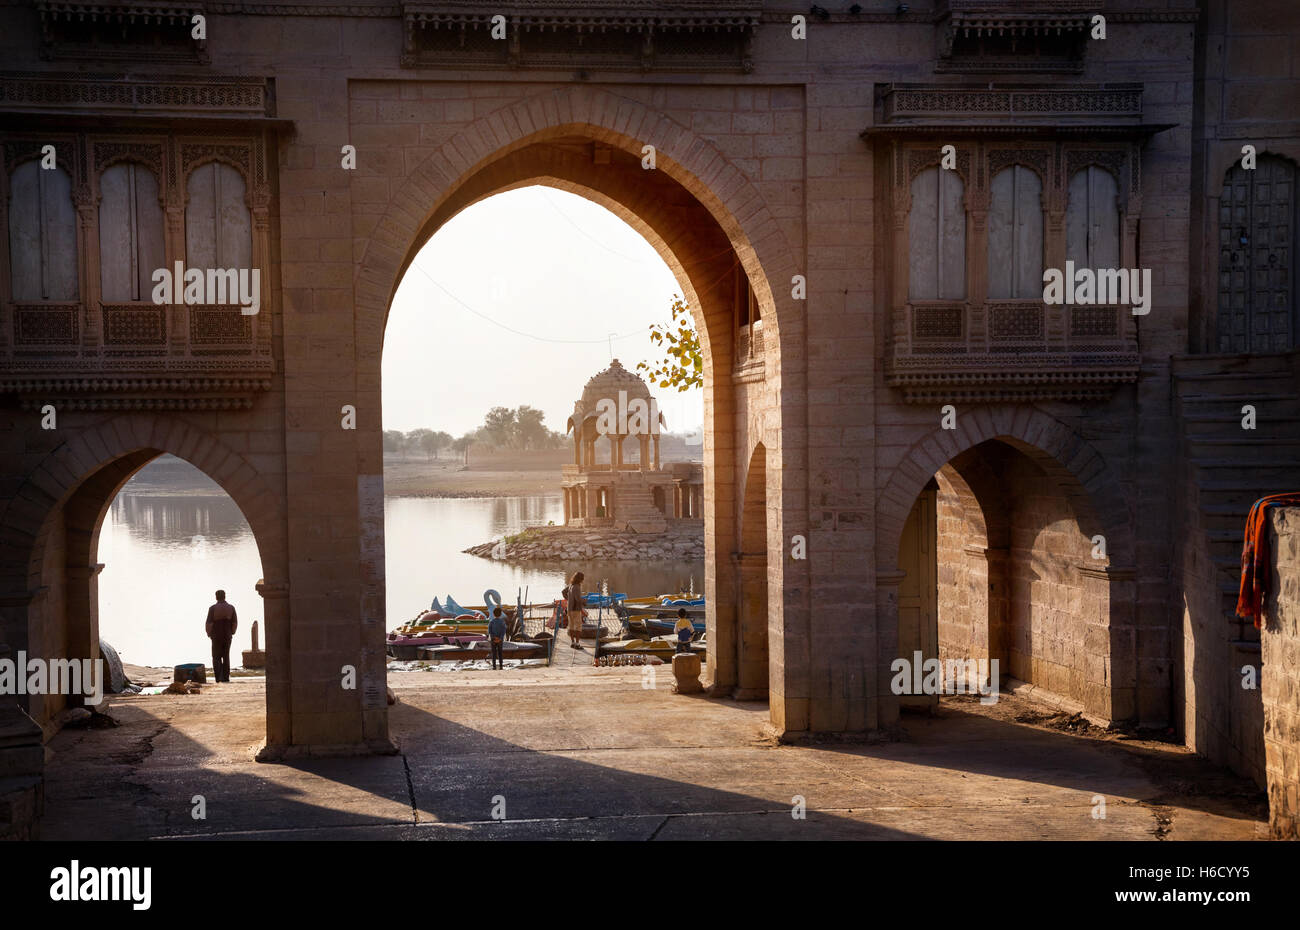 Temple Arch near the Gadi Sagar Lake at sunrise in Jaisalmer, Rajasthan, India - Stock Image